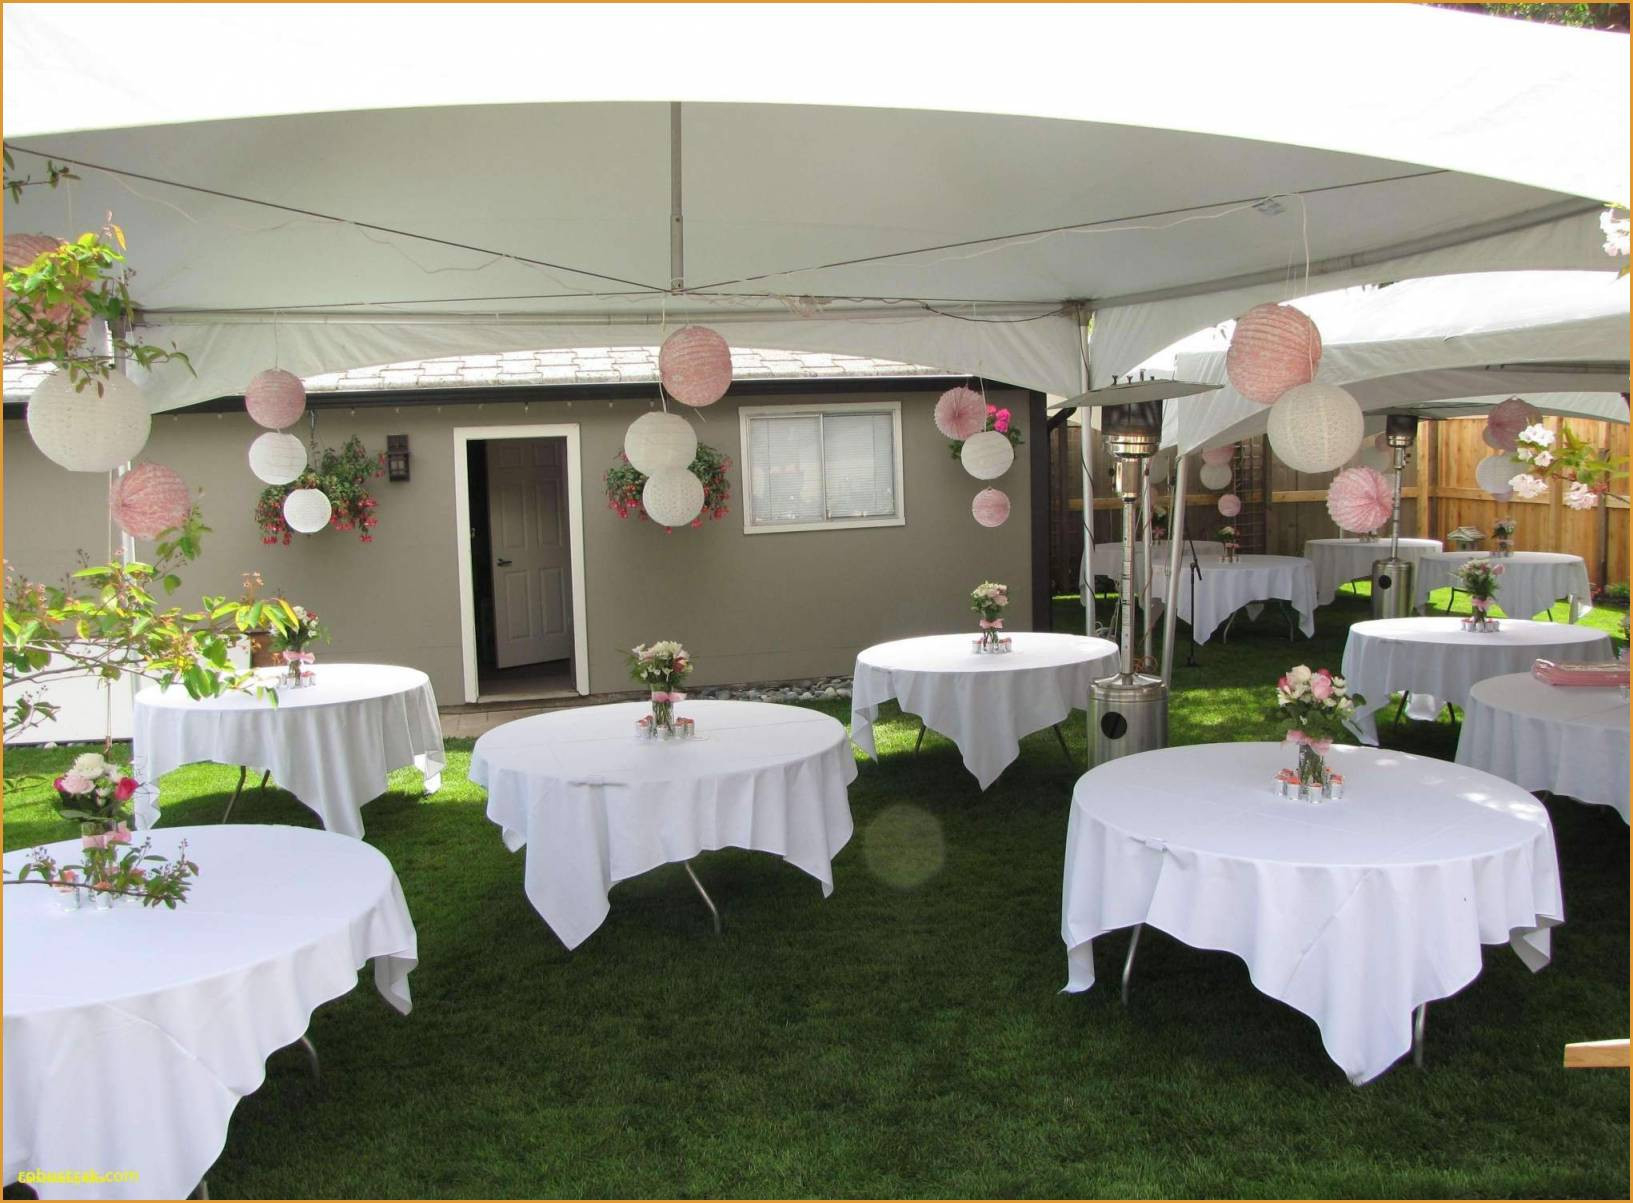 Lovely Backyard Wedding Ideas Nycloves with regard to Backyard Wedding Decoration Ideas On A Budget